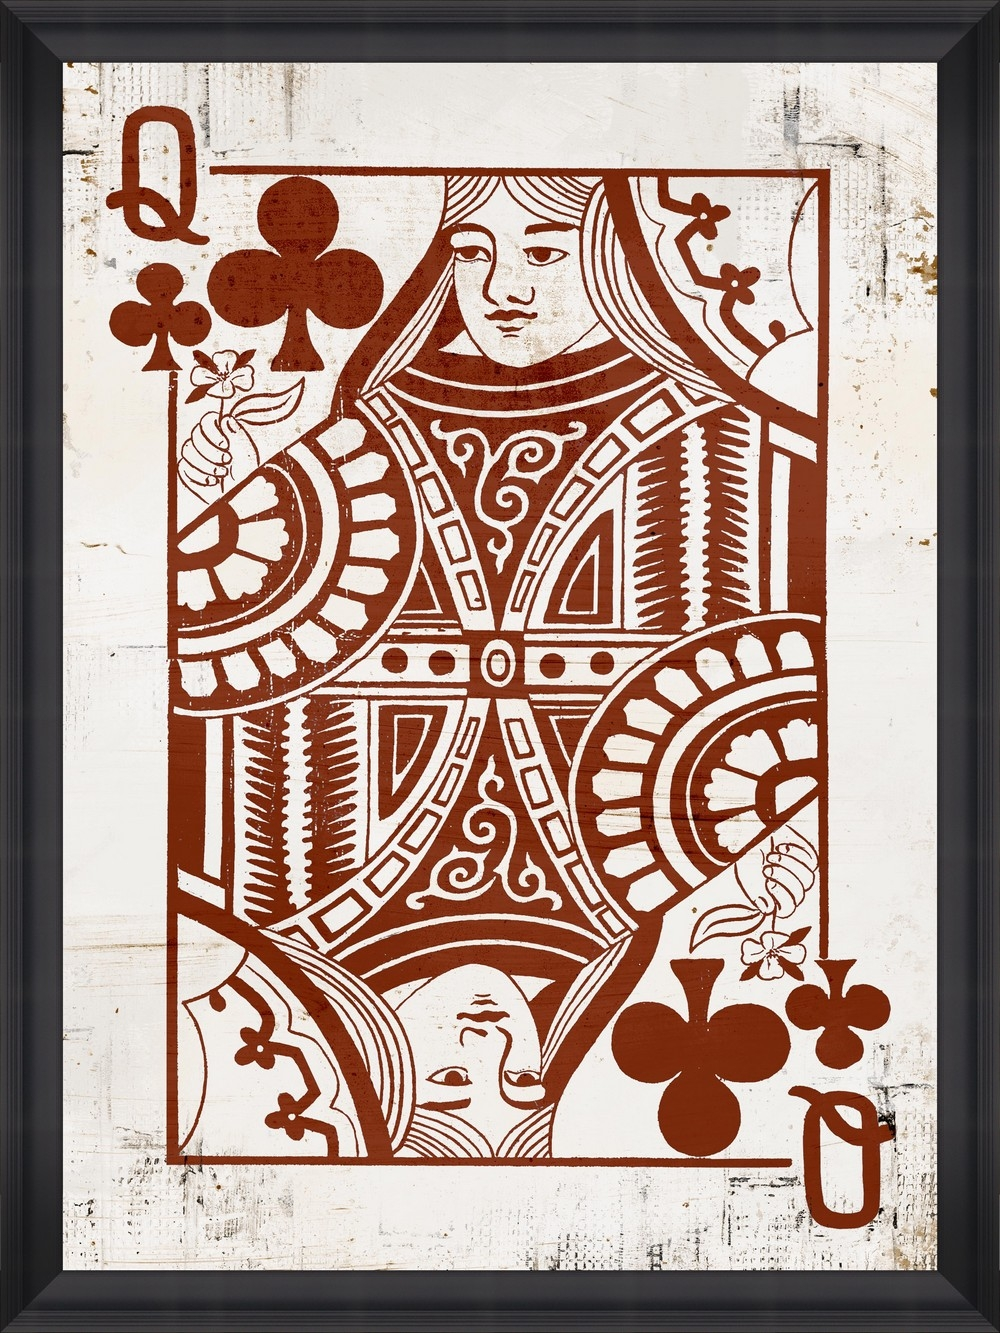 Tablou Framed Art Play Cards I din categoria Tablouri Inramate